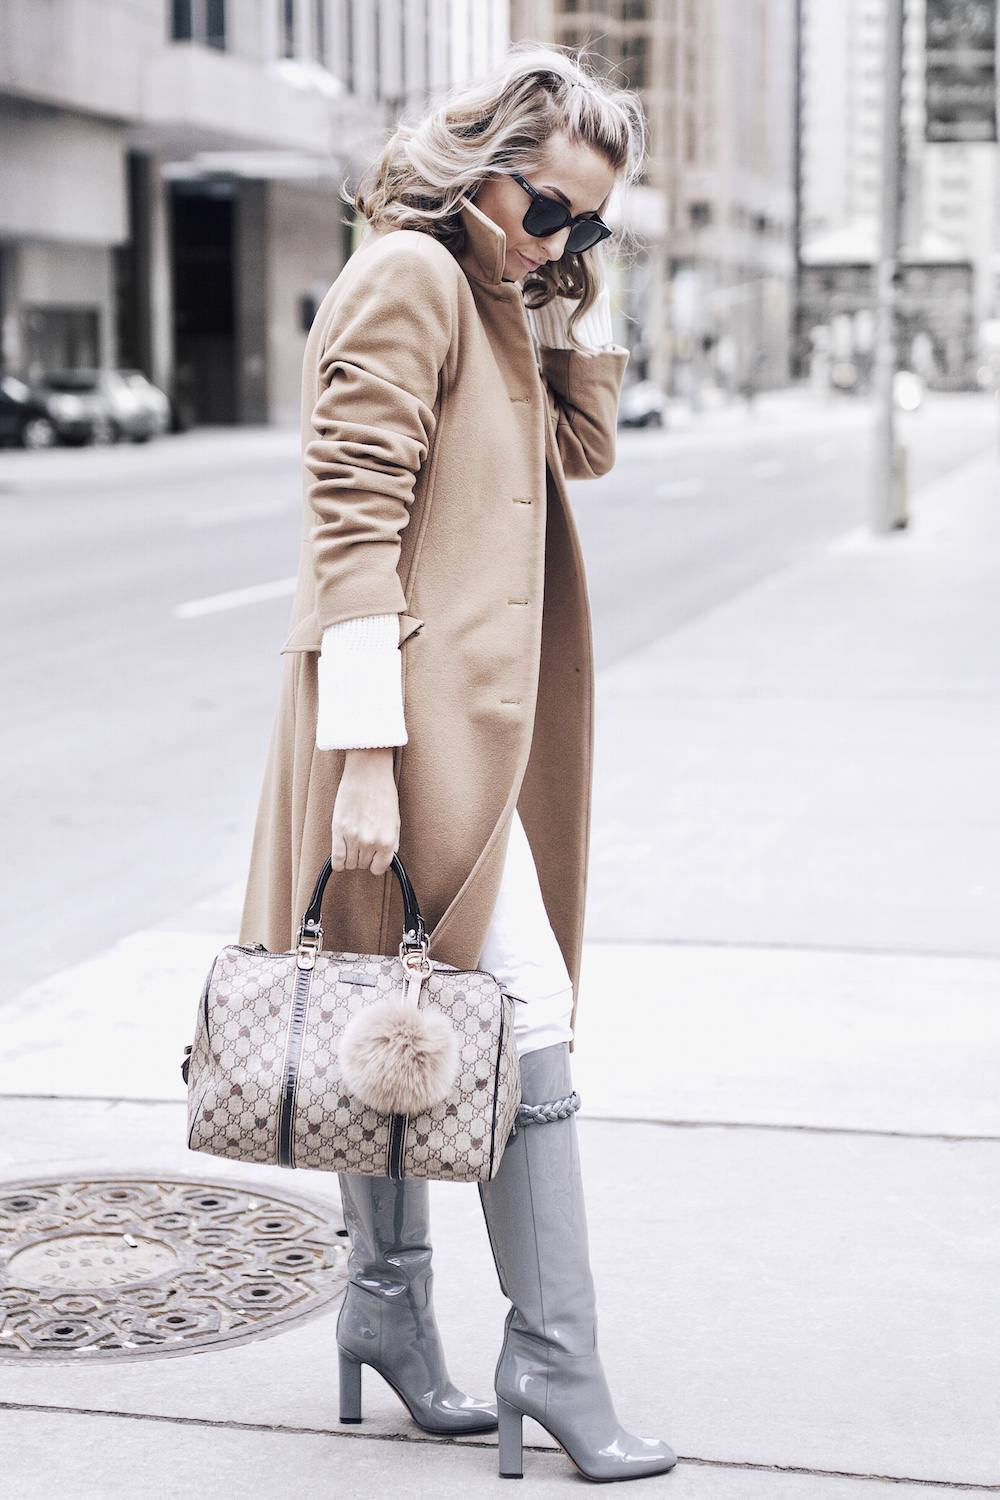 styling a camel coat